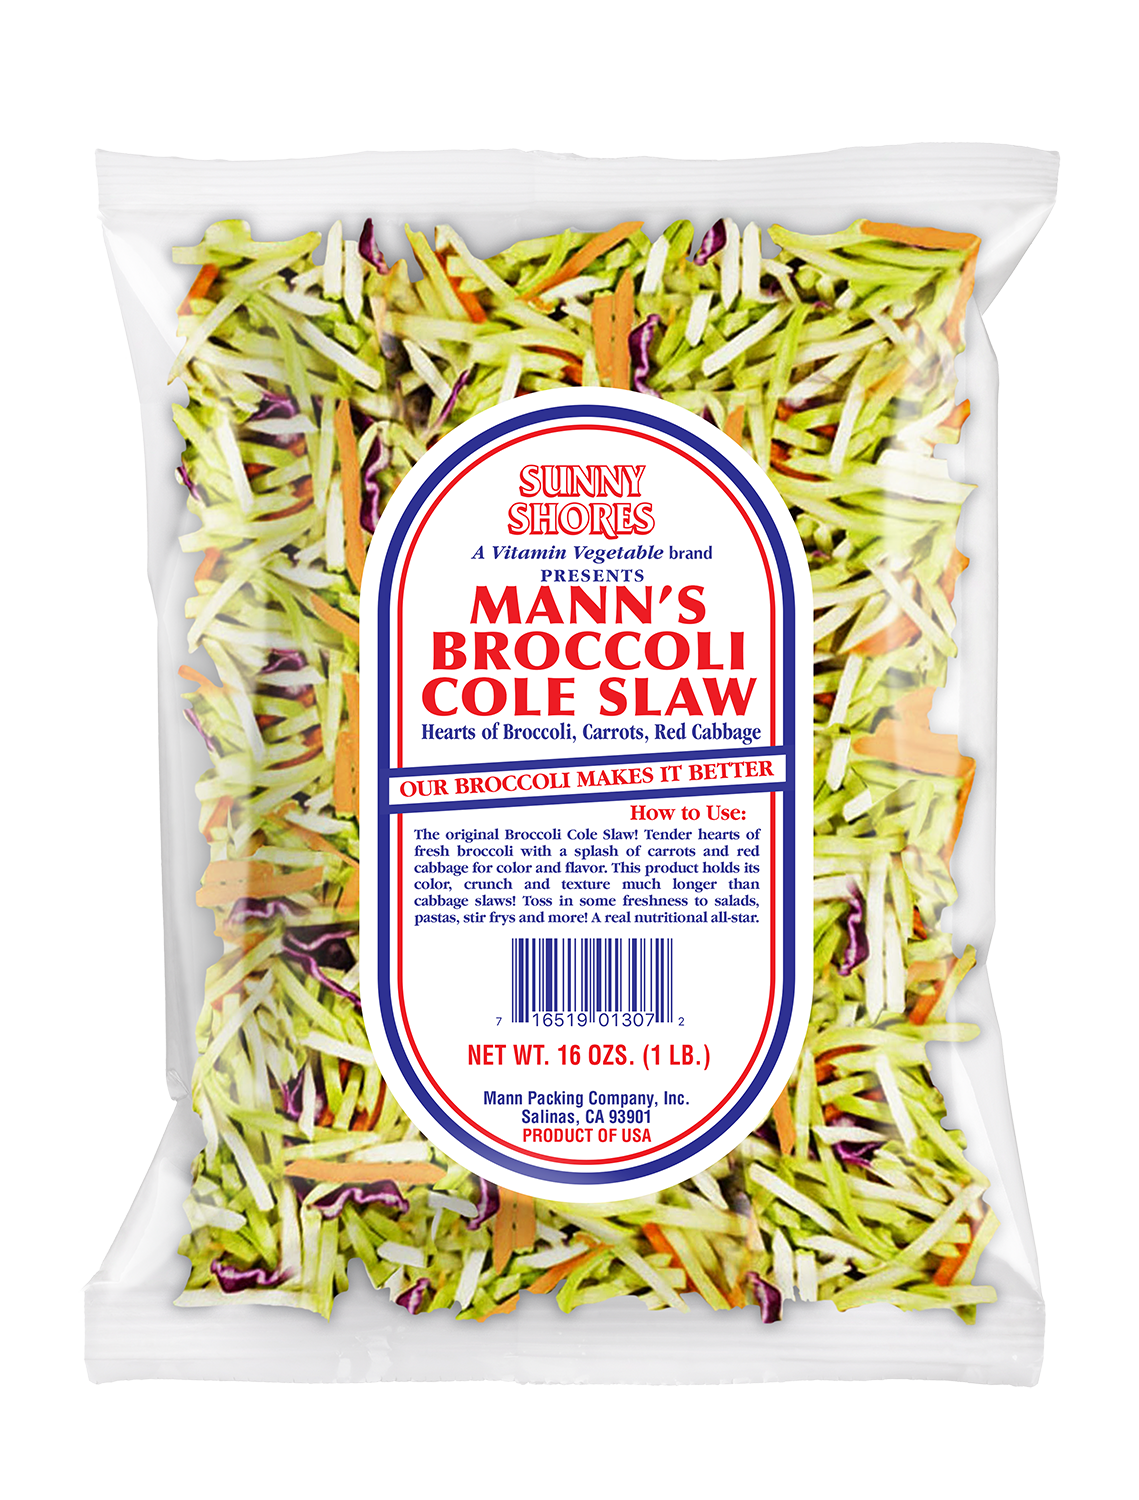 Mann's Broccoli Cole Slaw